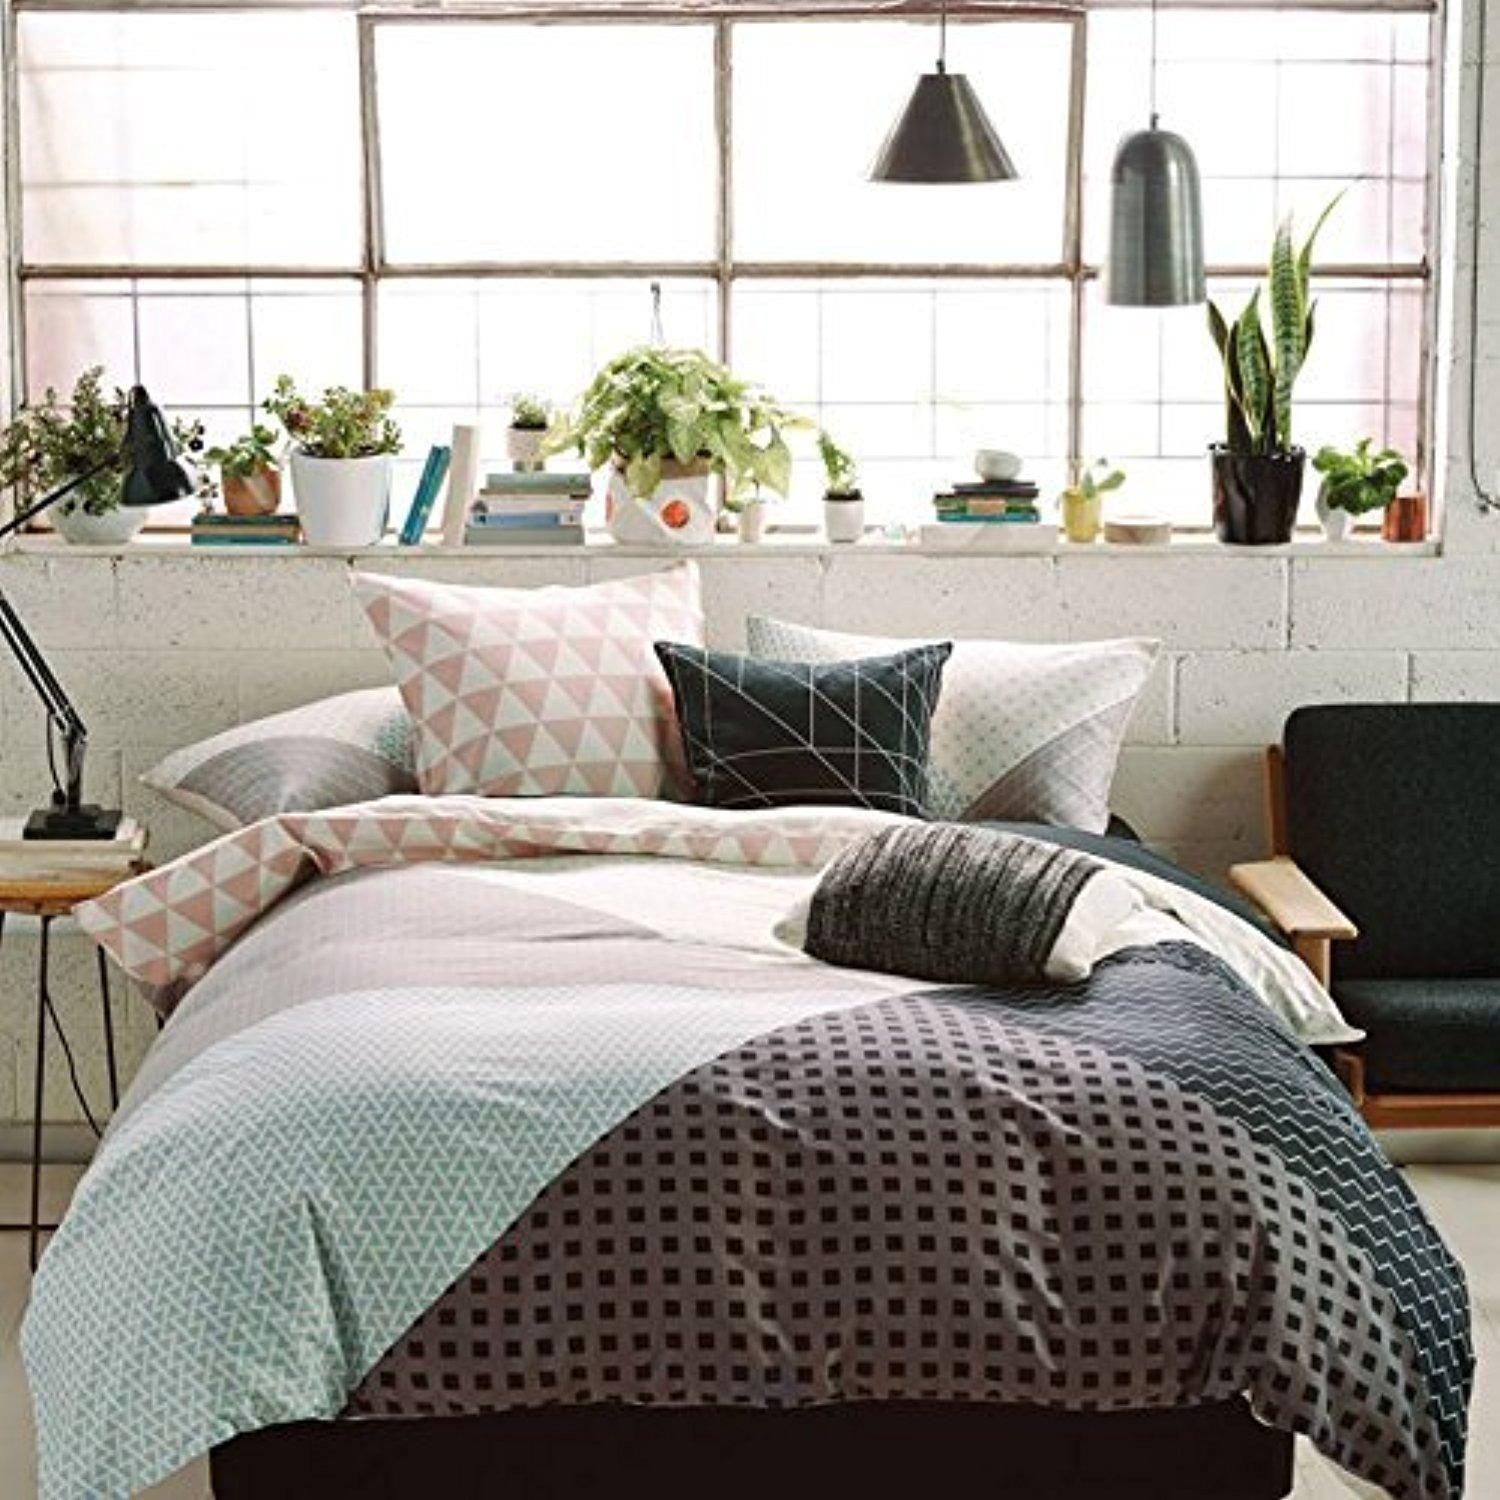 King Size Duvet Covers | Pottery Barn Bedding | King Size Duvet